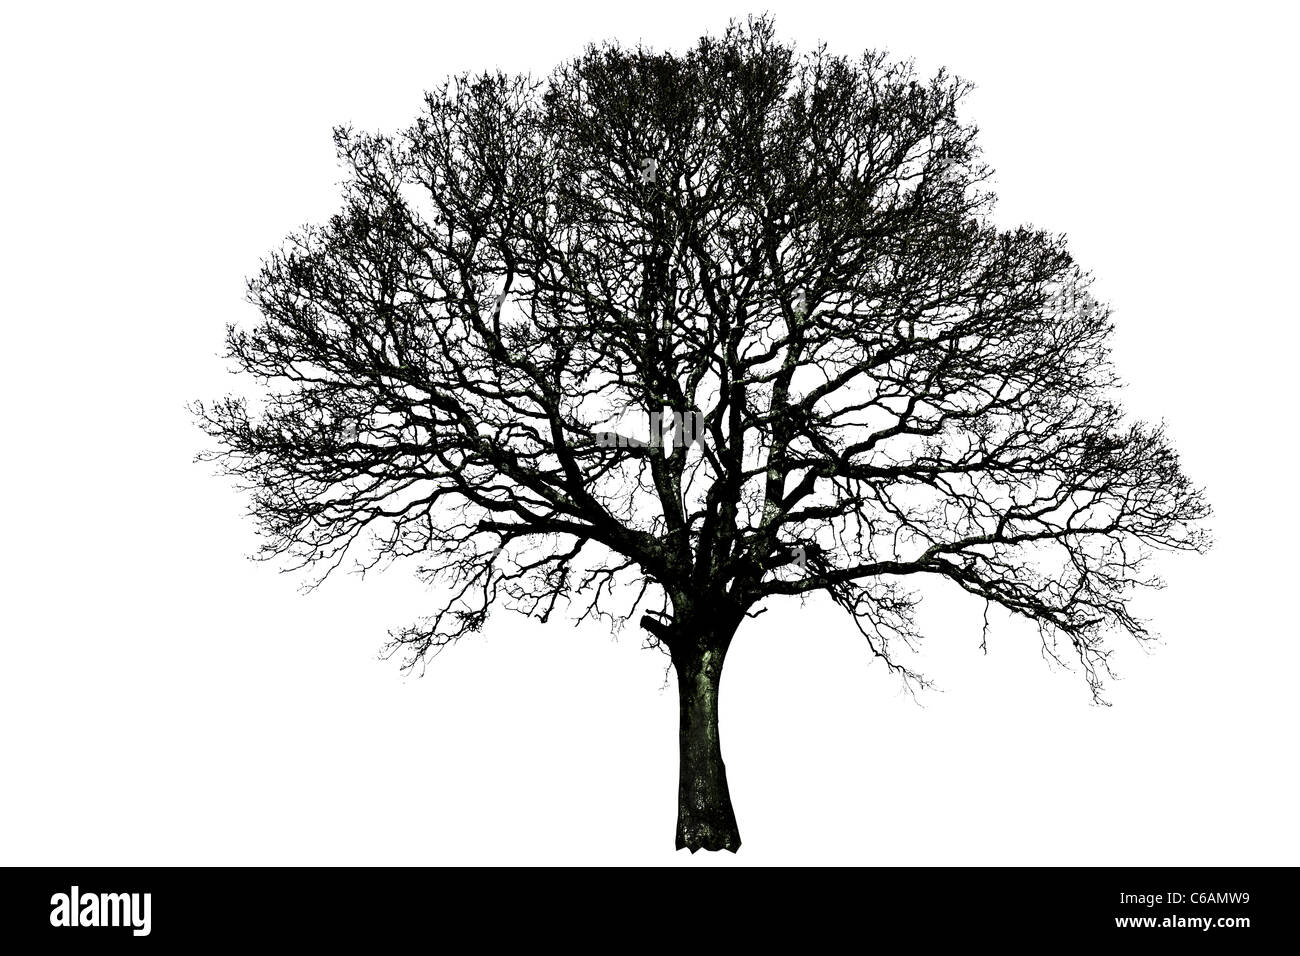 Tree silhouette single black and white line isolated remote alone winter stark solitary